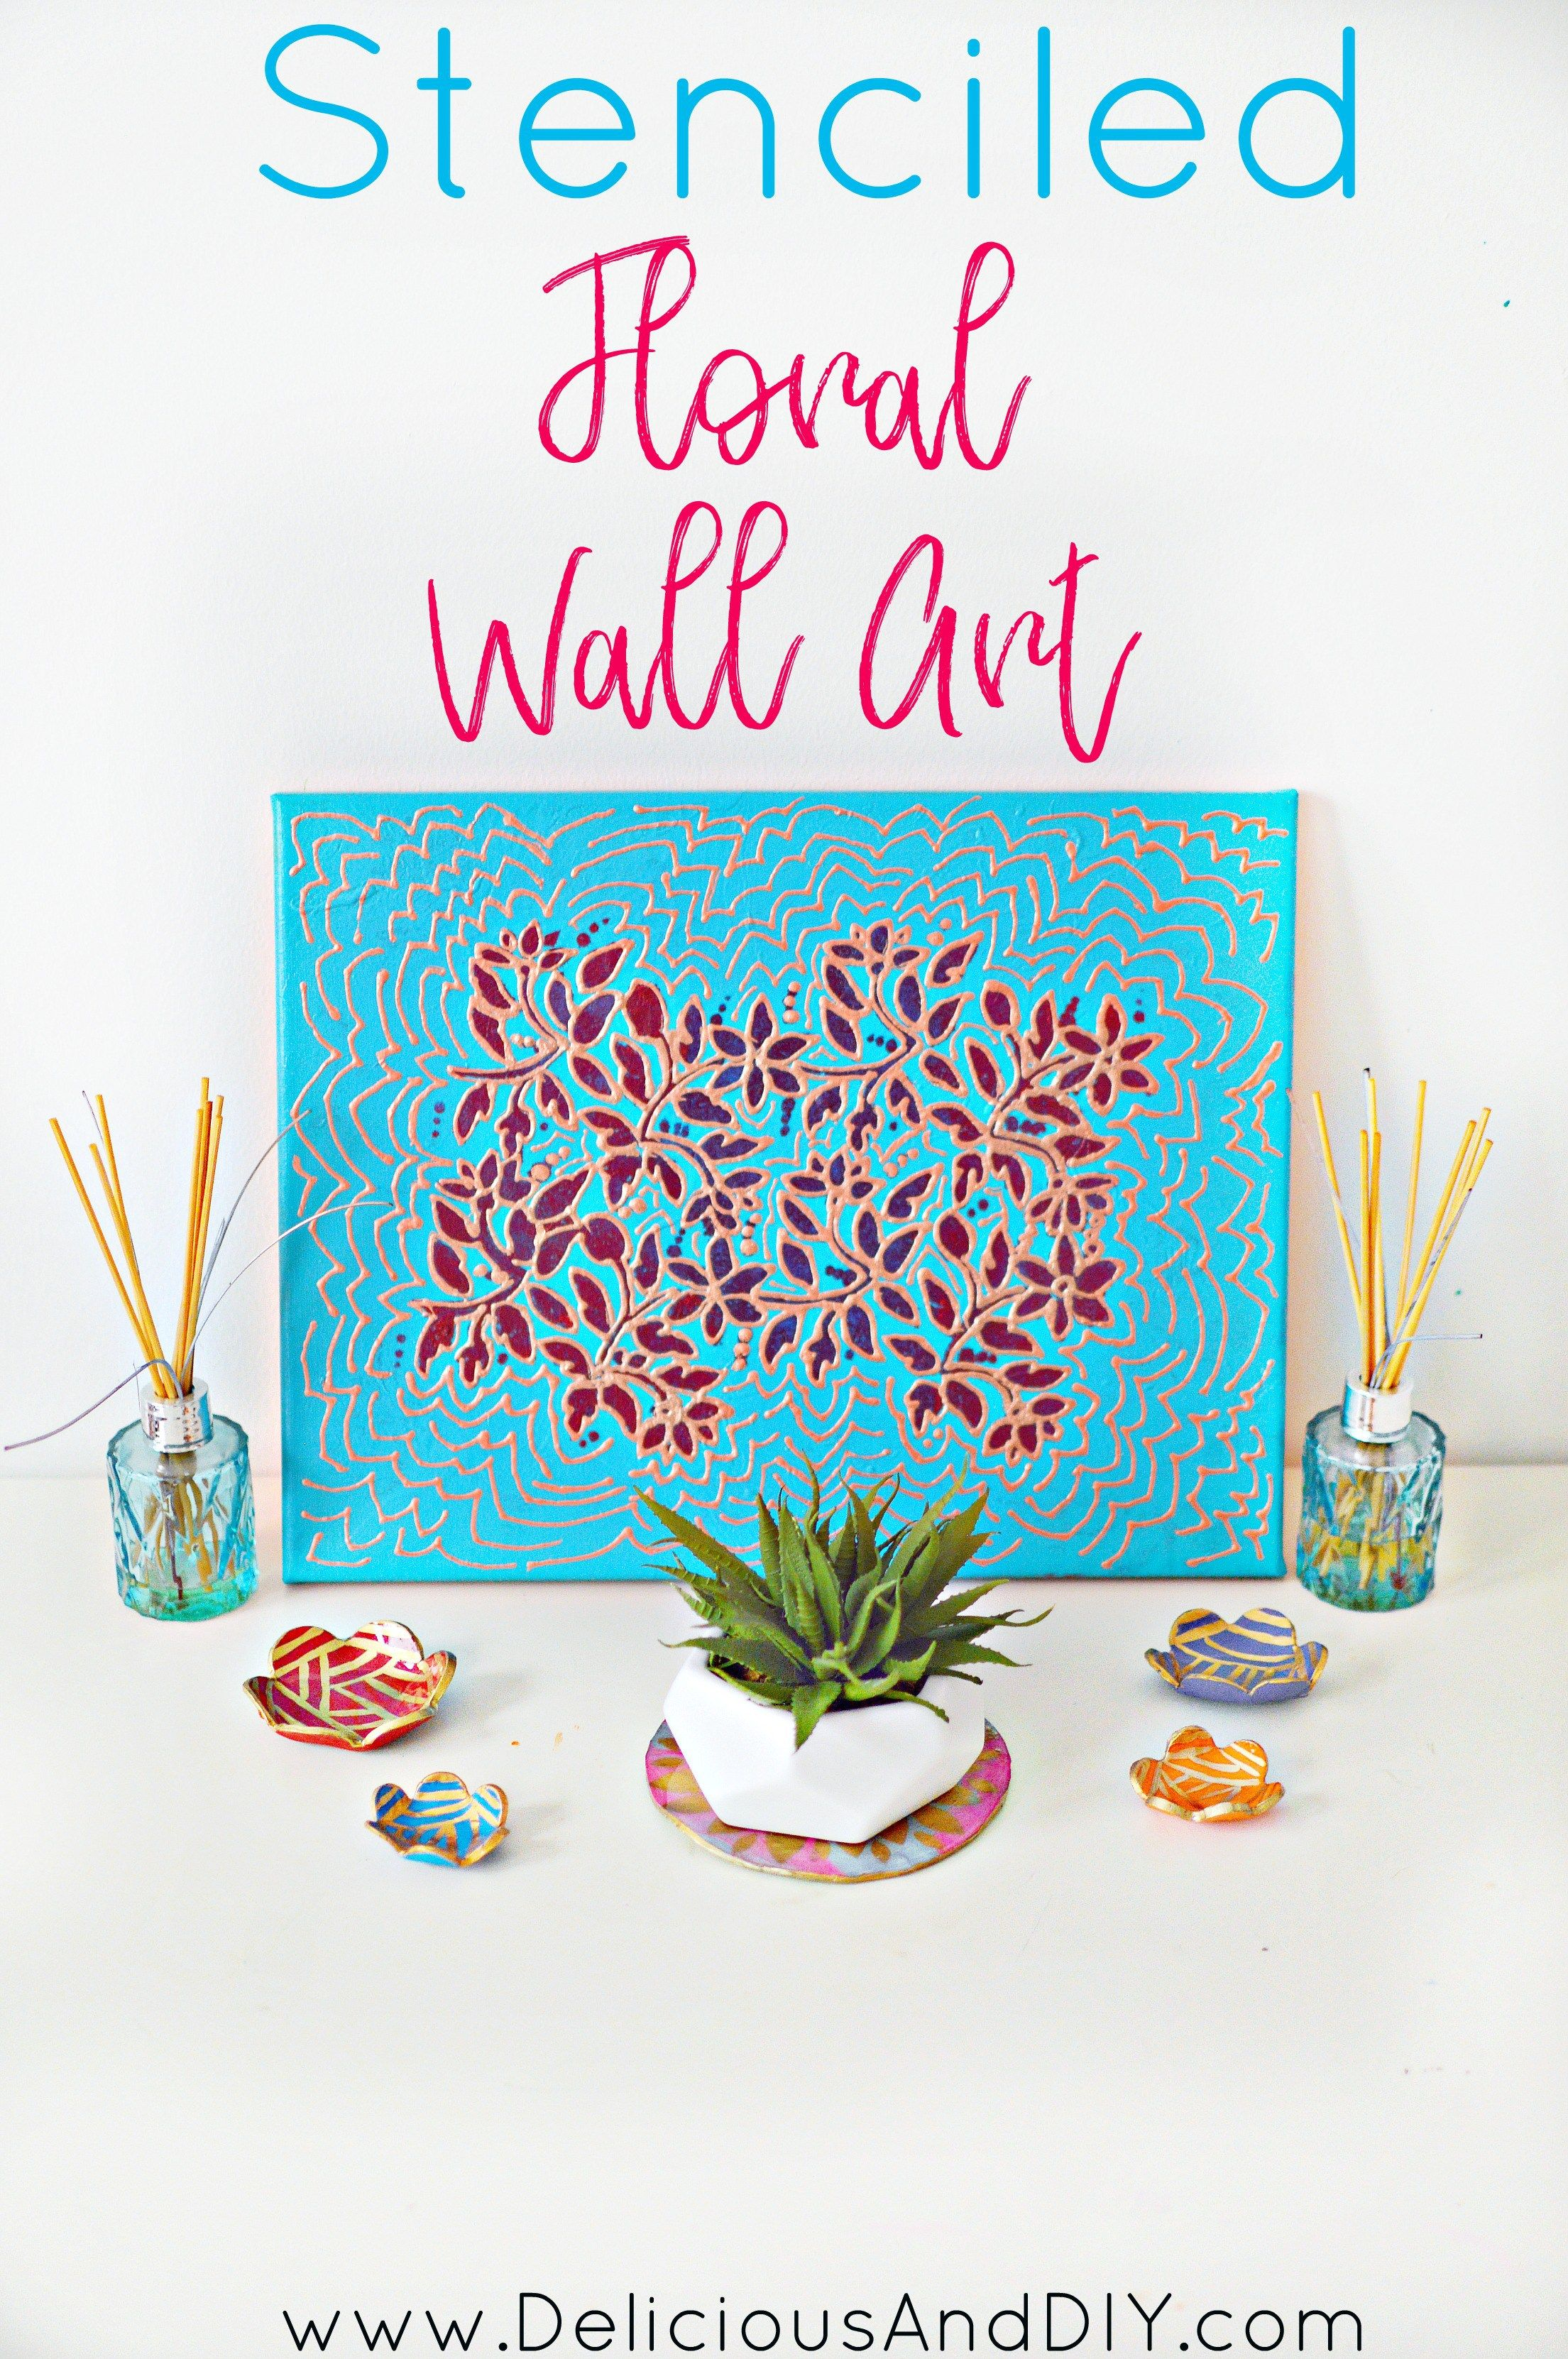 Stenciled Floral Wall Art Create With Paint And Brush Stencil